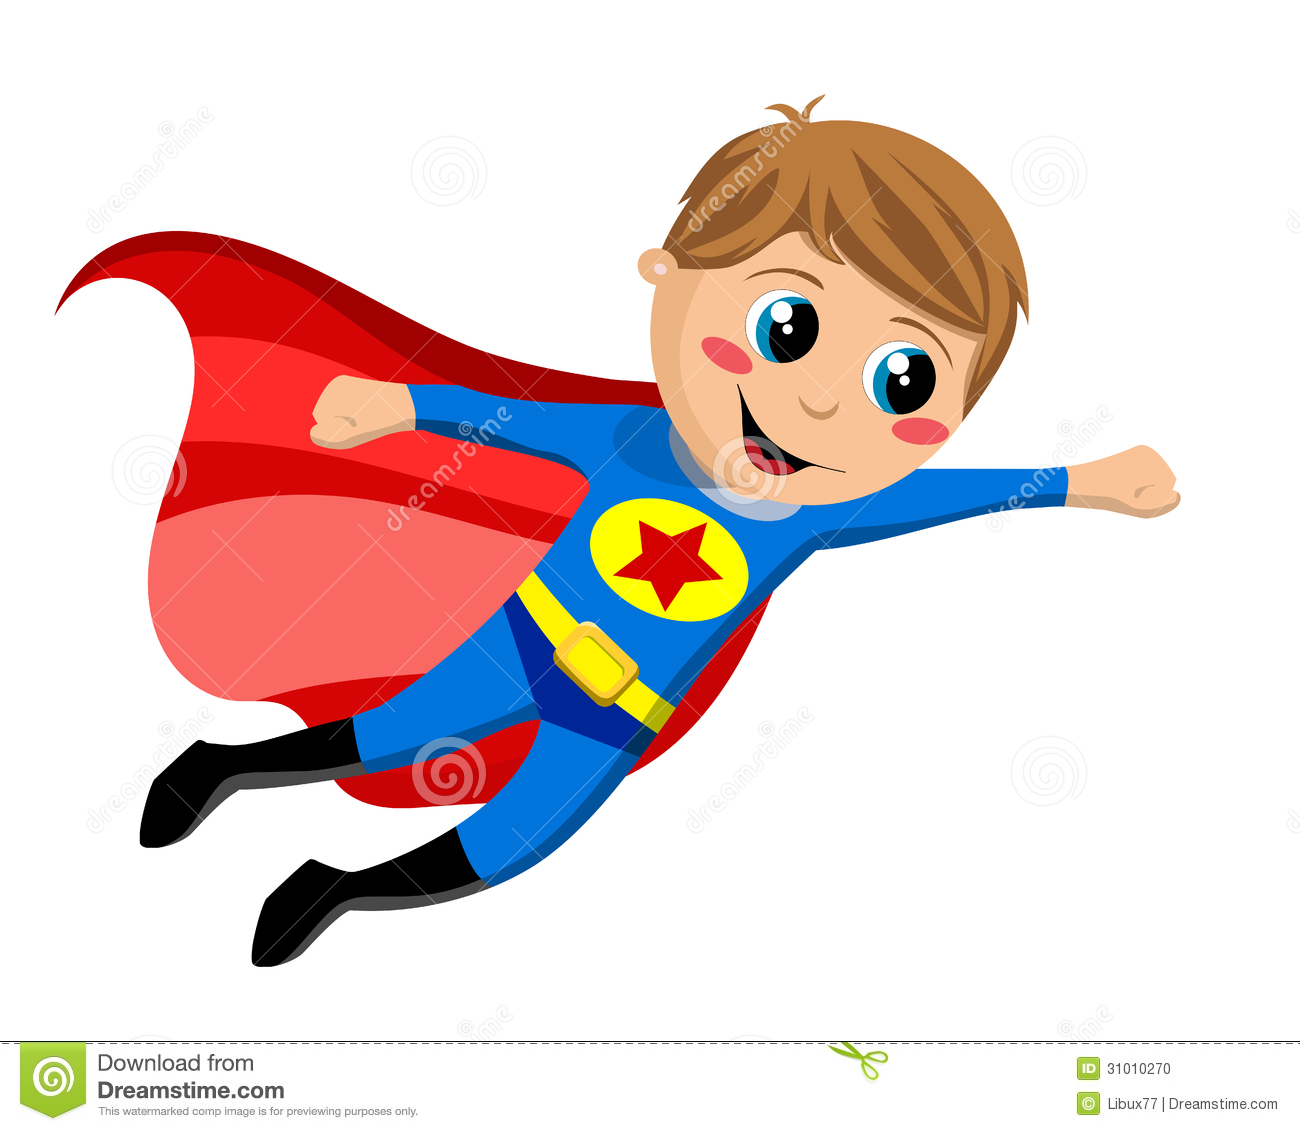 Boy Super Hero Clip Art Superhero Kid Flying Isolated White Background